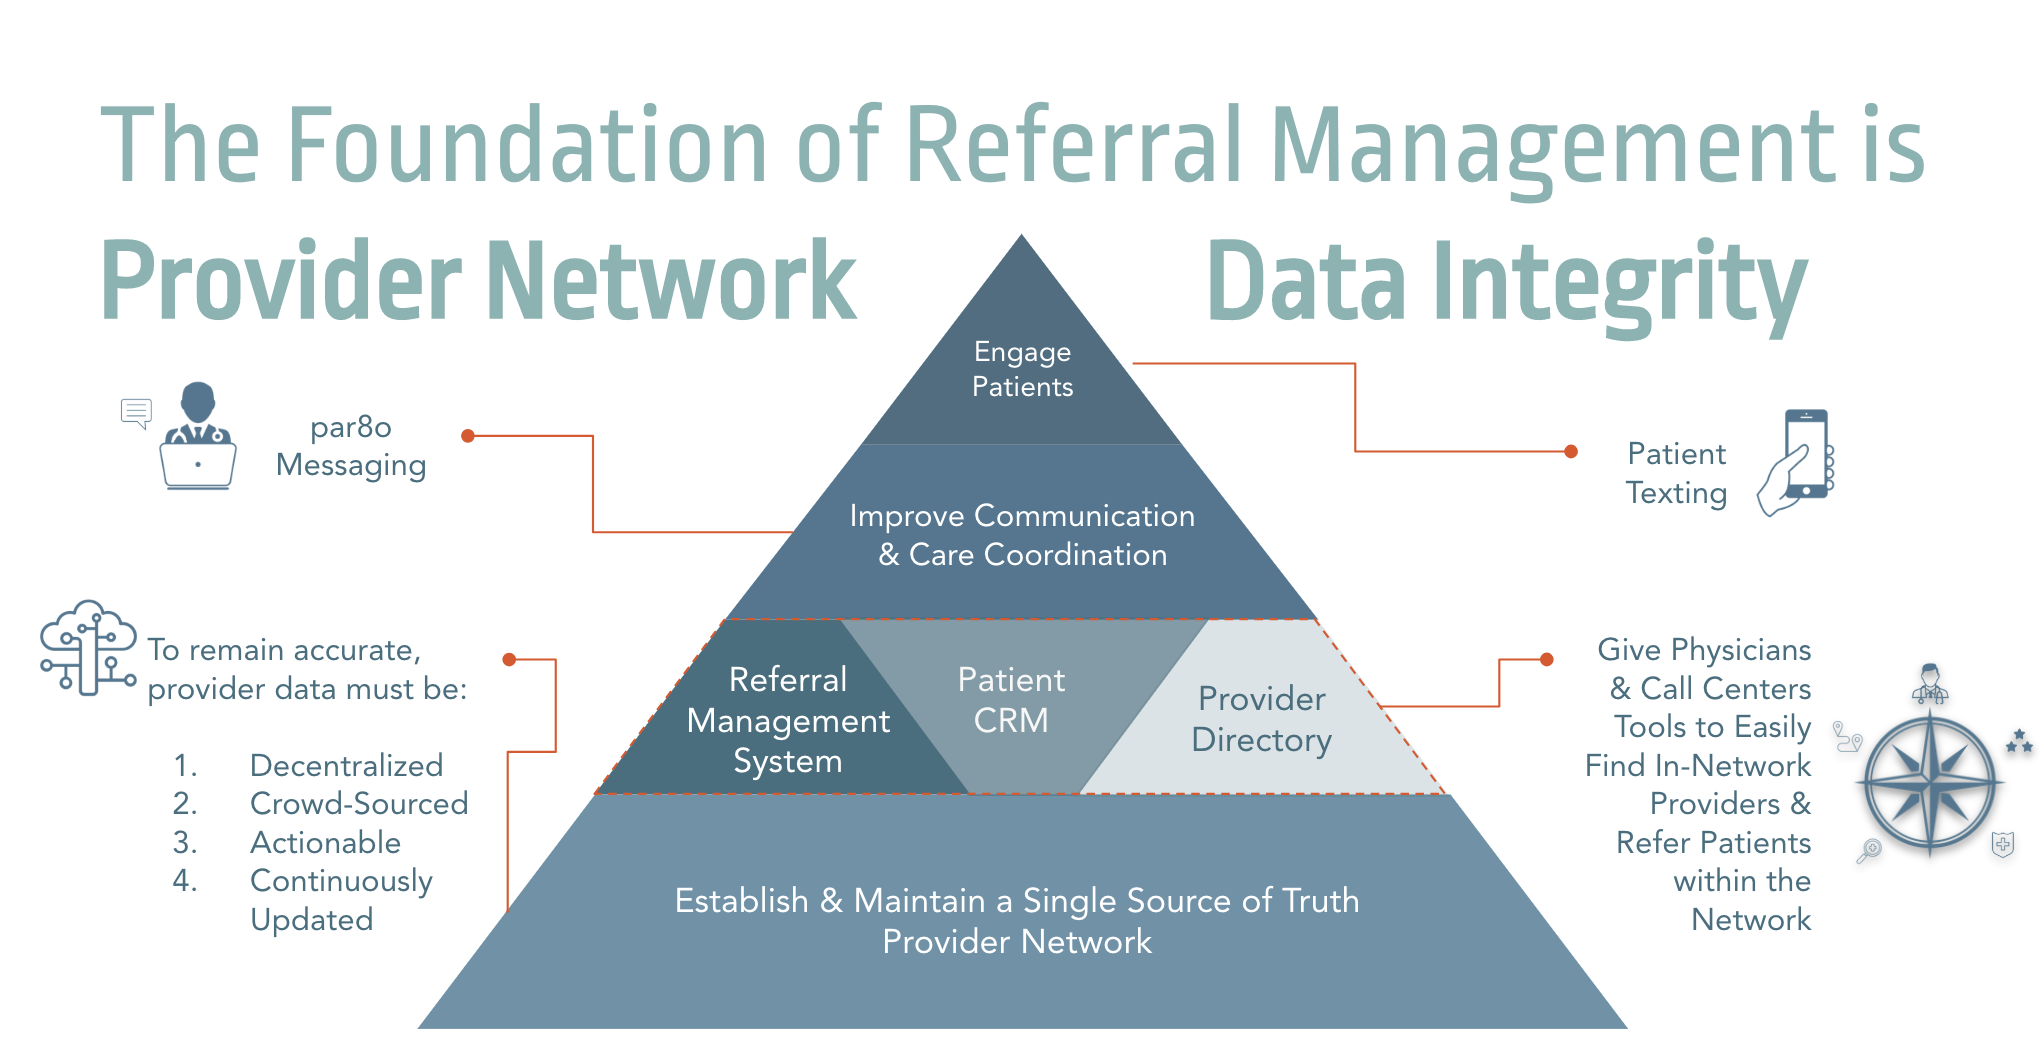 Provider Network Data Integrity is the Foundation of Good Referral Management